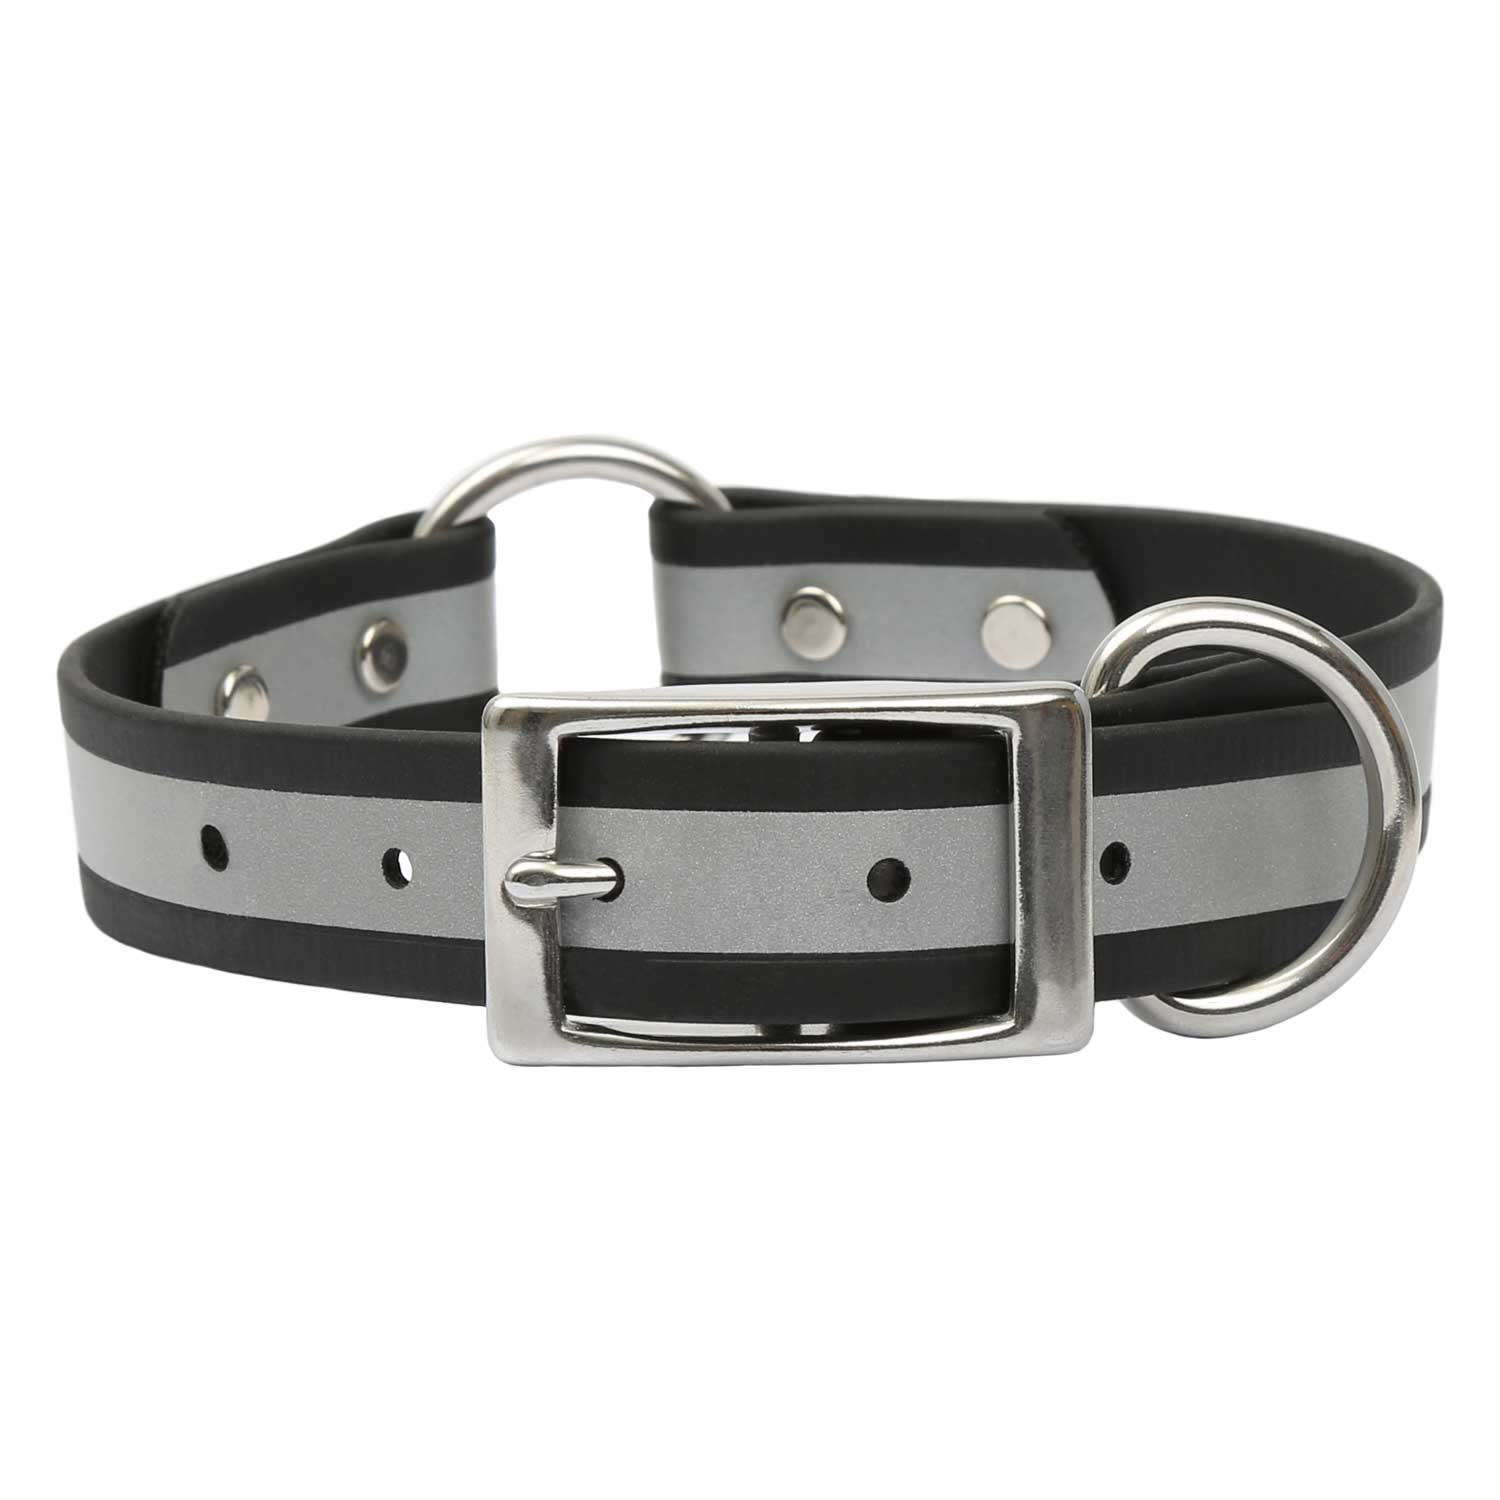 Reflective Waterproof Safety Collar - Black